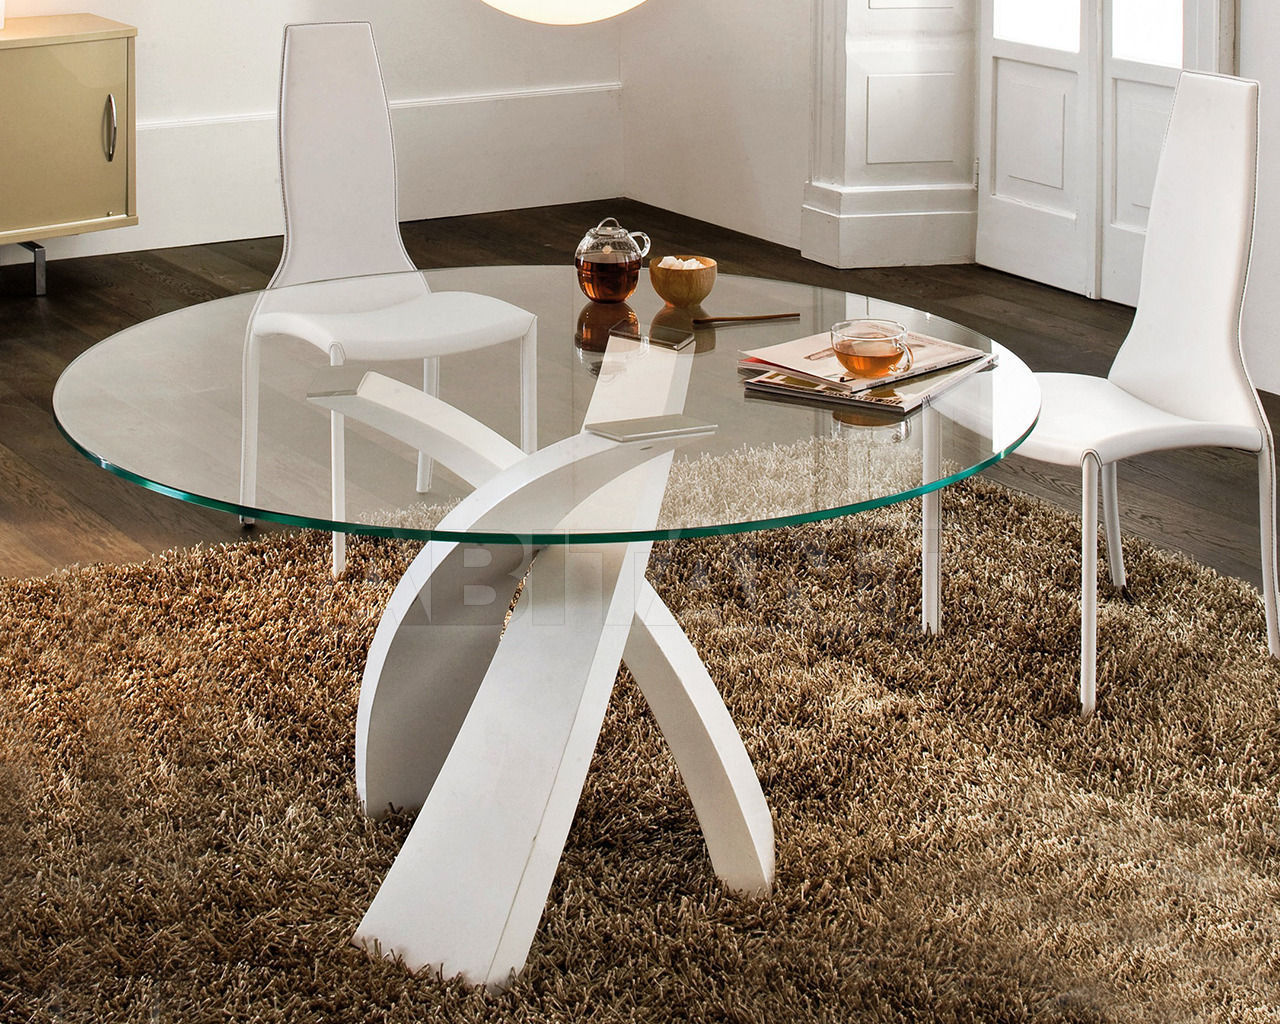 Dining Table Eliseo Tonin Casa 8028 Buy Rder Nline On Abitant